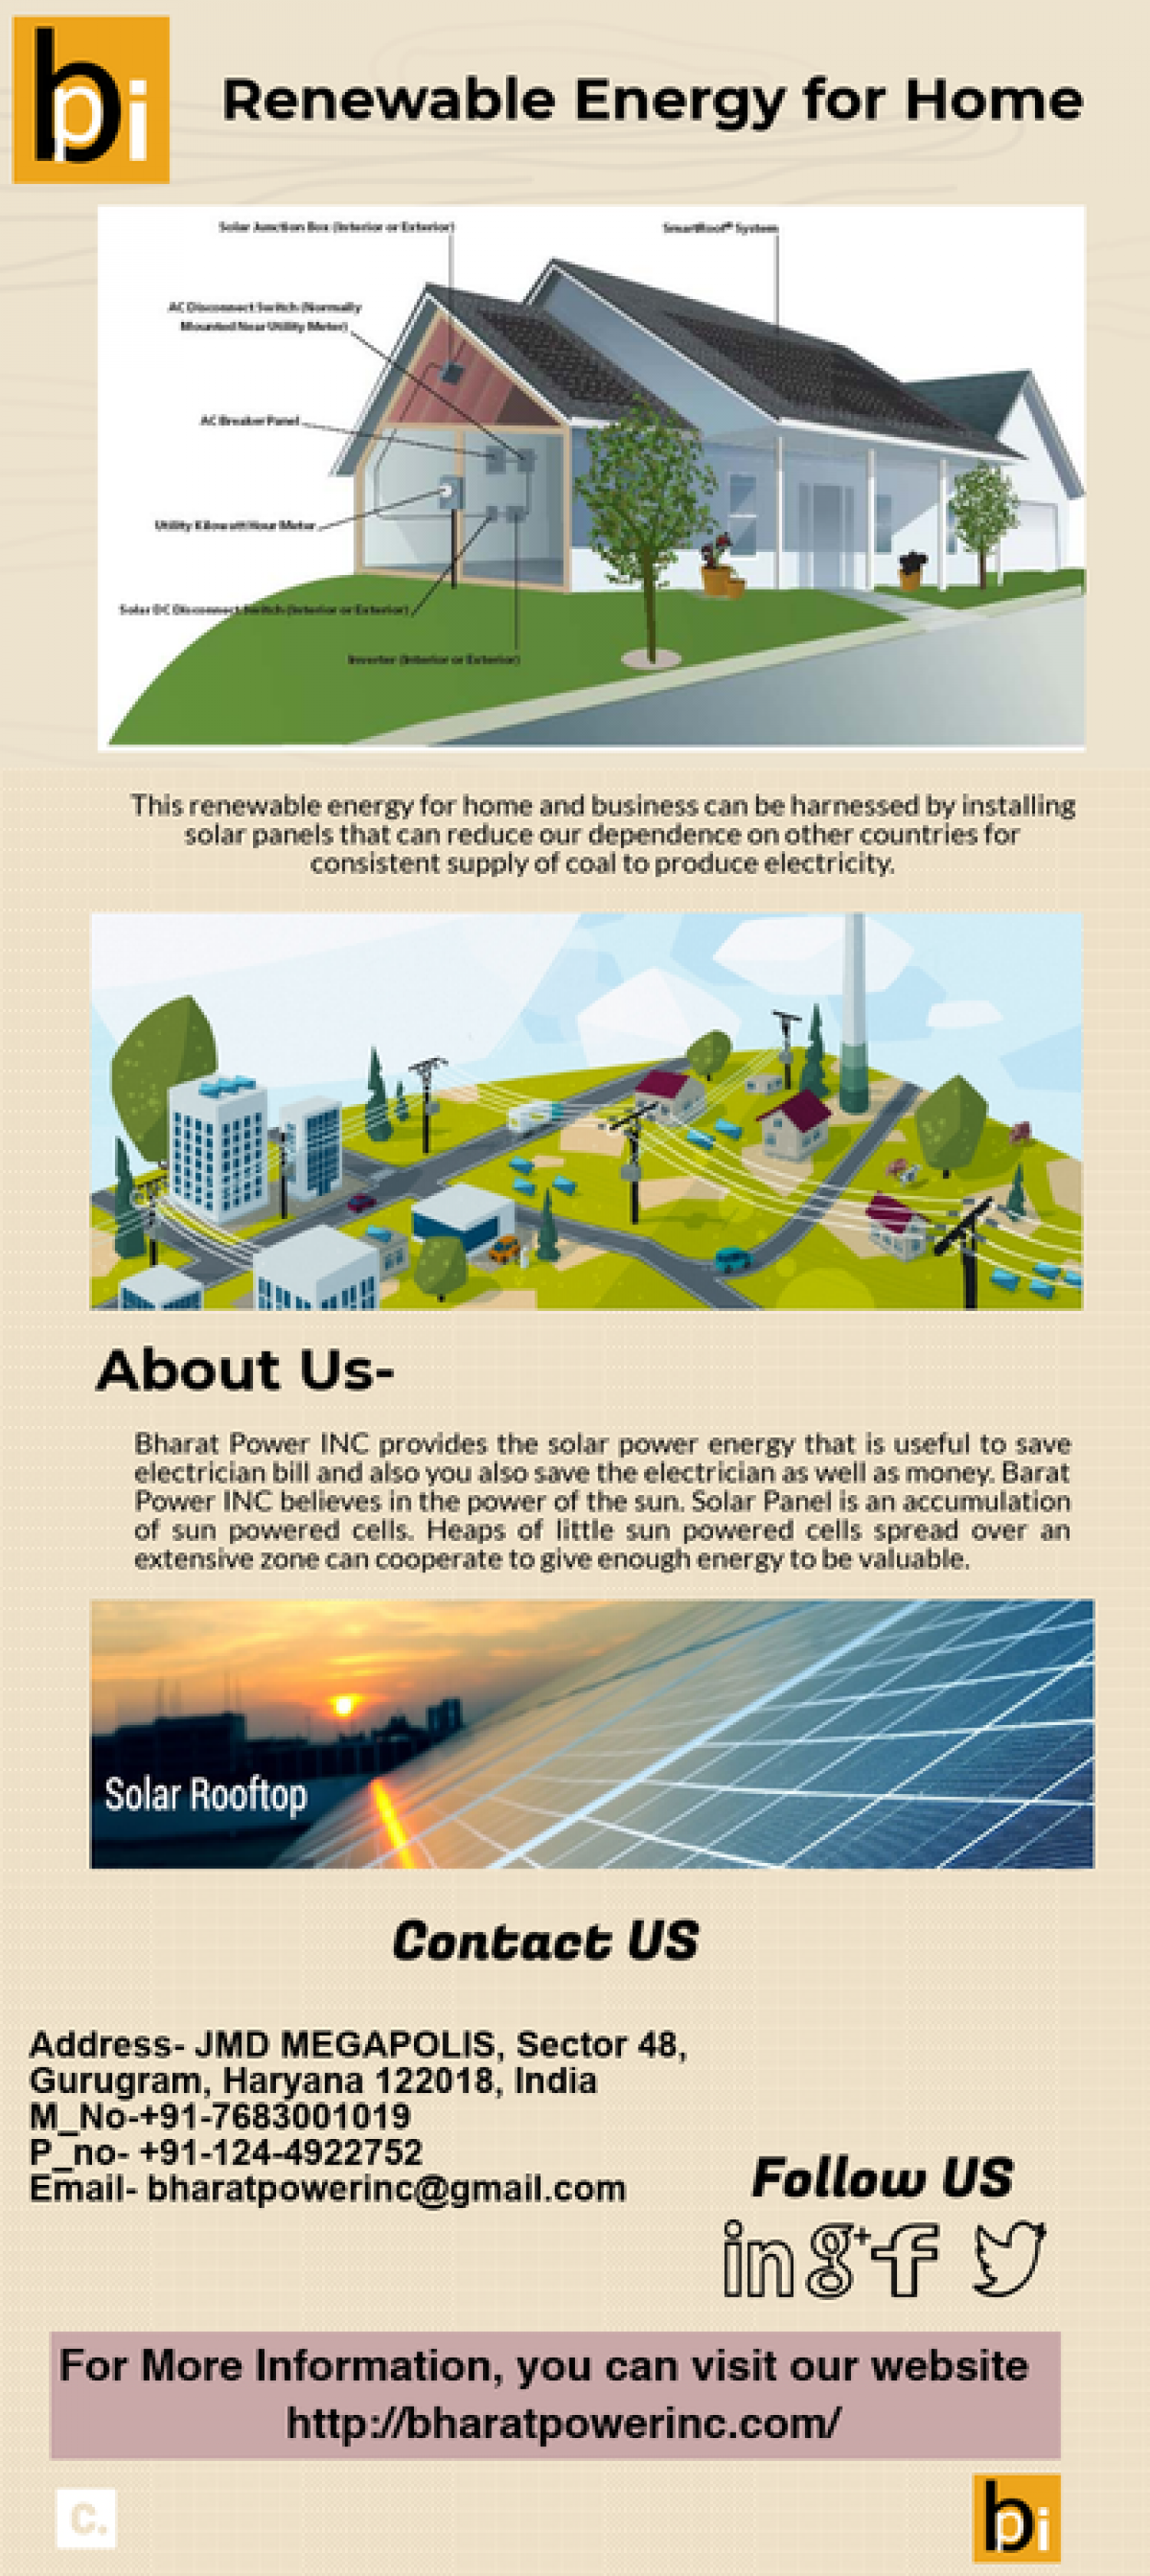 Renewable Energy for Home Infographic